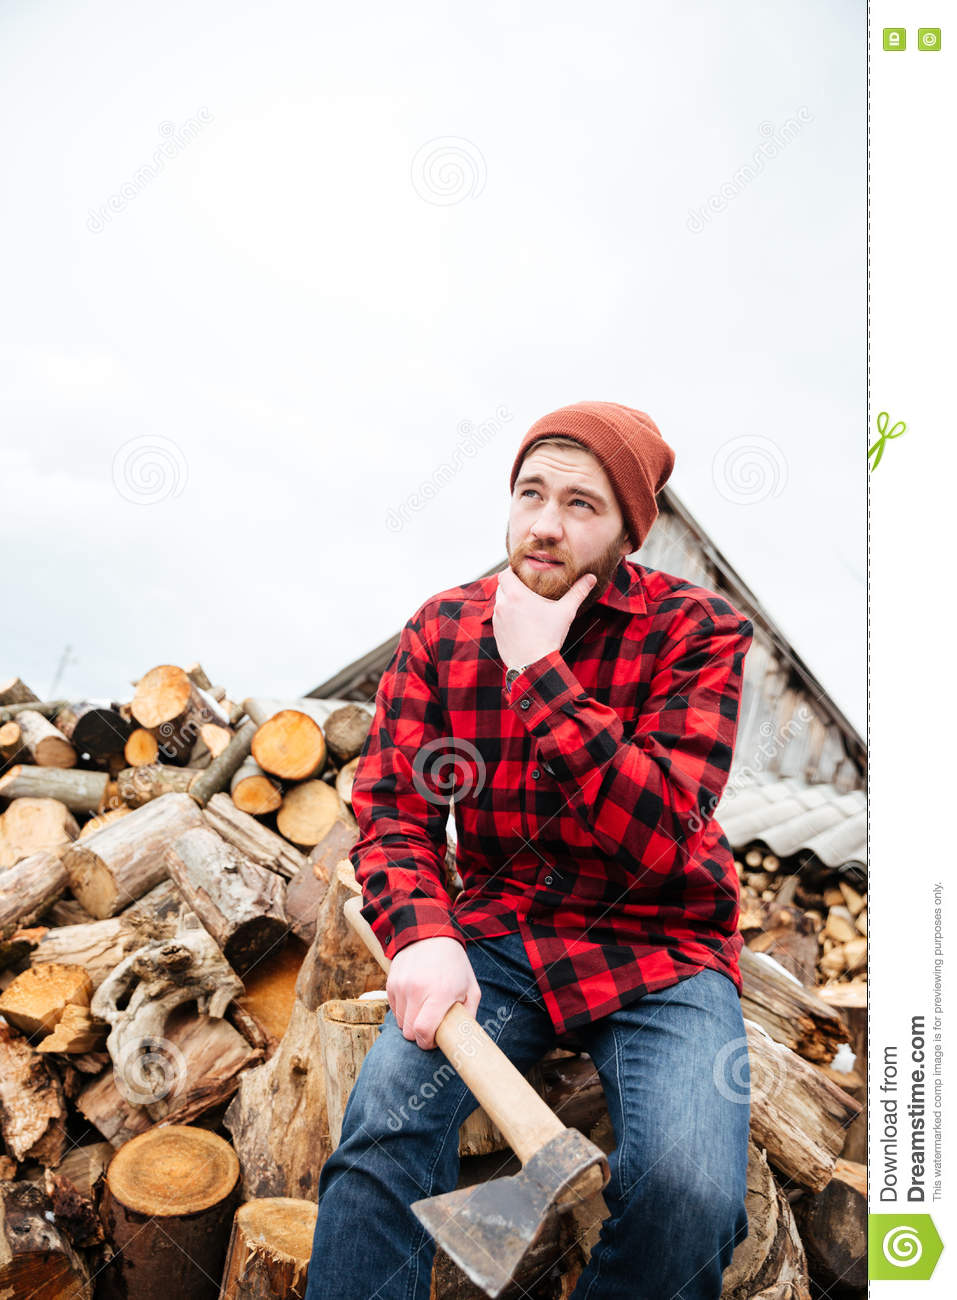 f0f42cedbb1 Pensive bearded young man in plaid shirt and hat with axe sitting on logs  and thinking